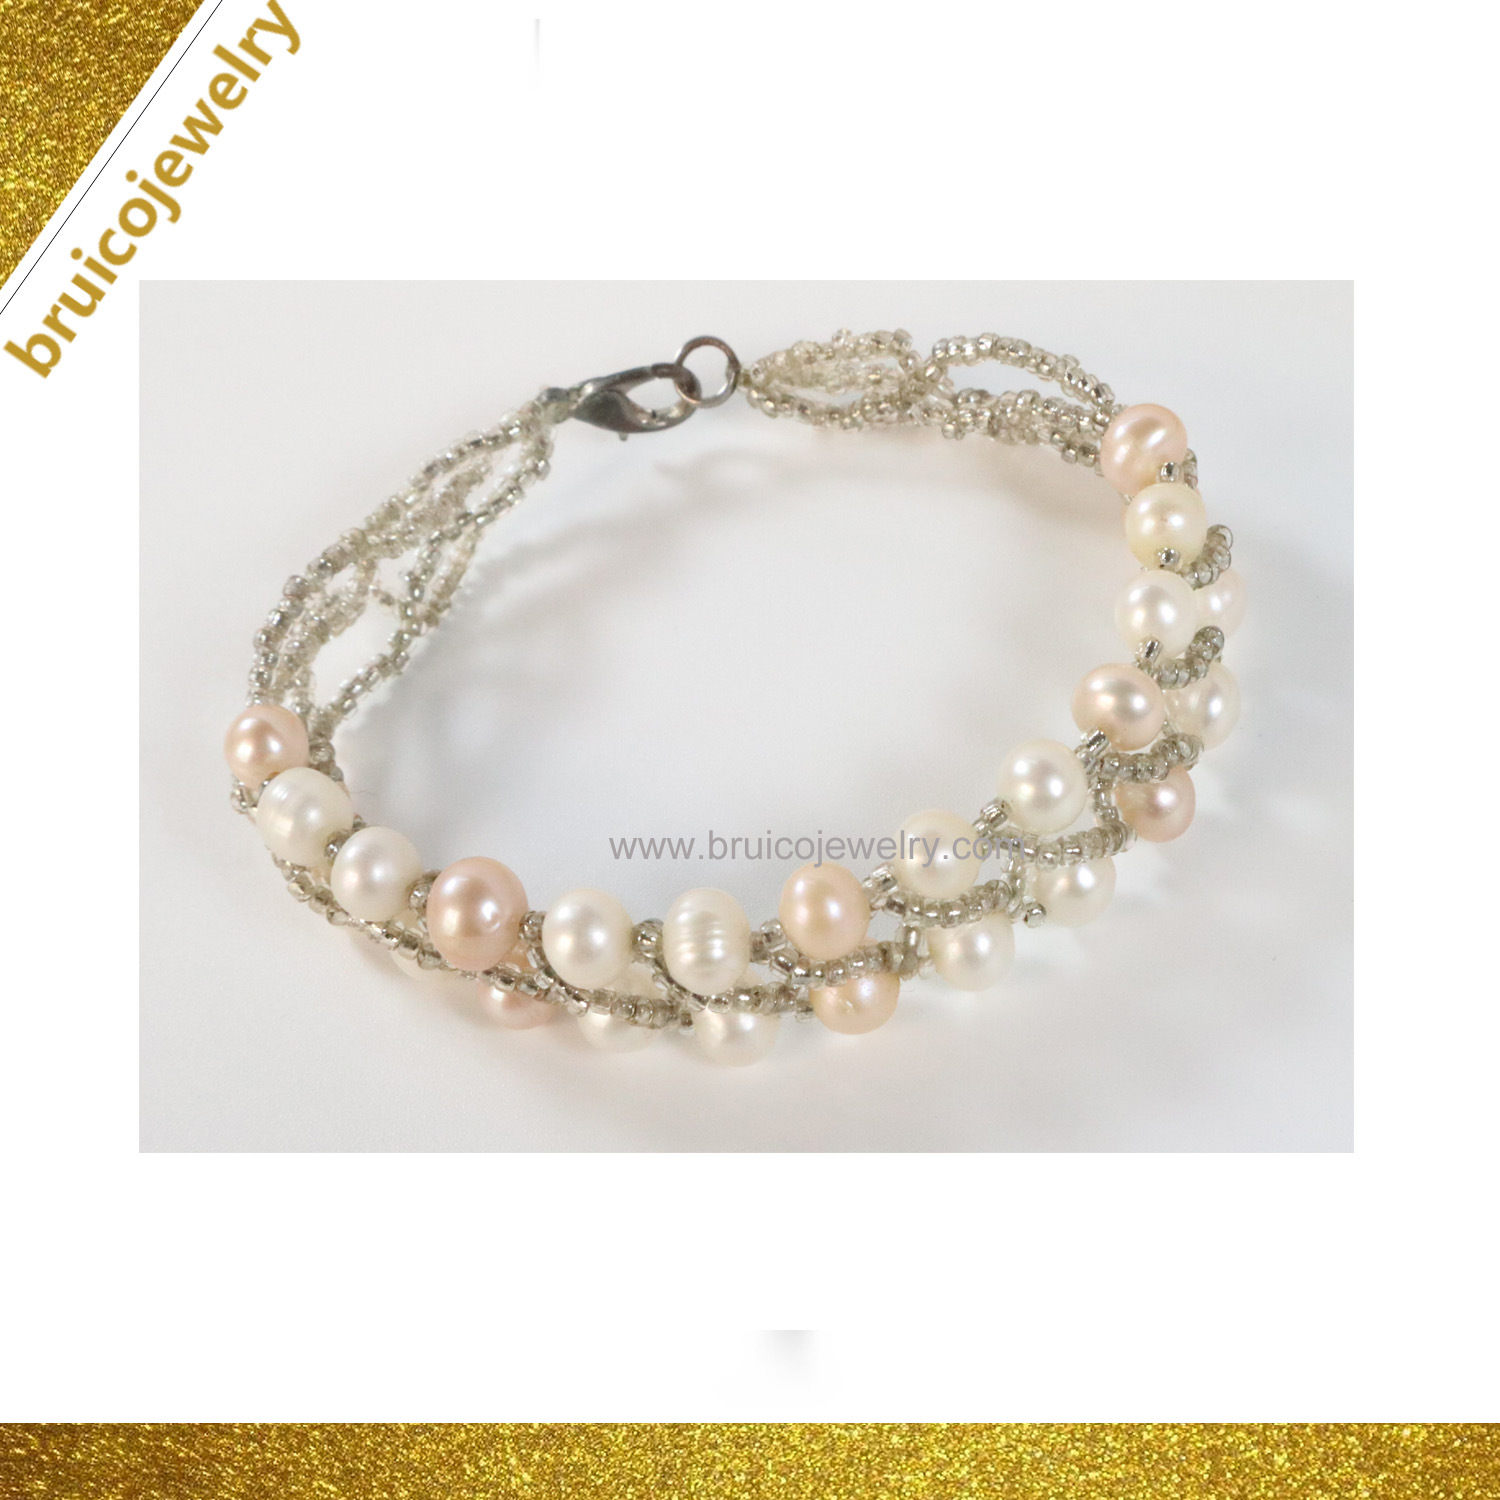 Hot Item Fashion Hand Woven Bead Bracelet Jewelry Silver Accessory Freshwater Pearl